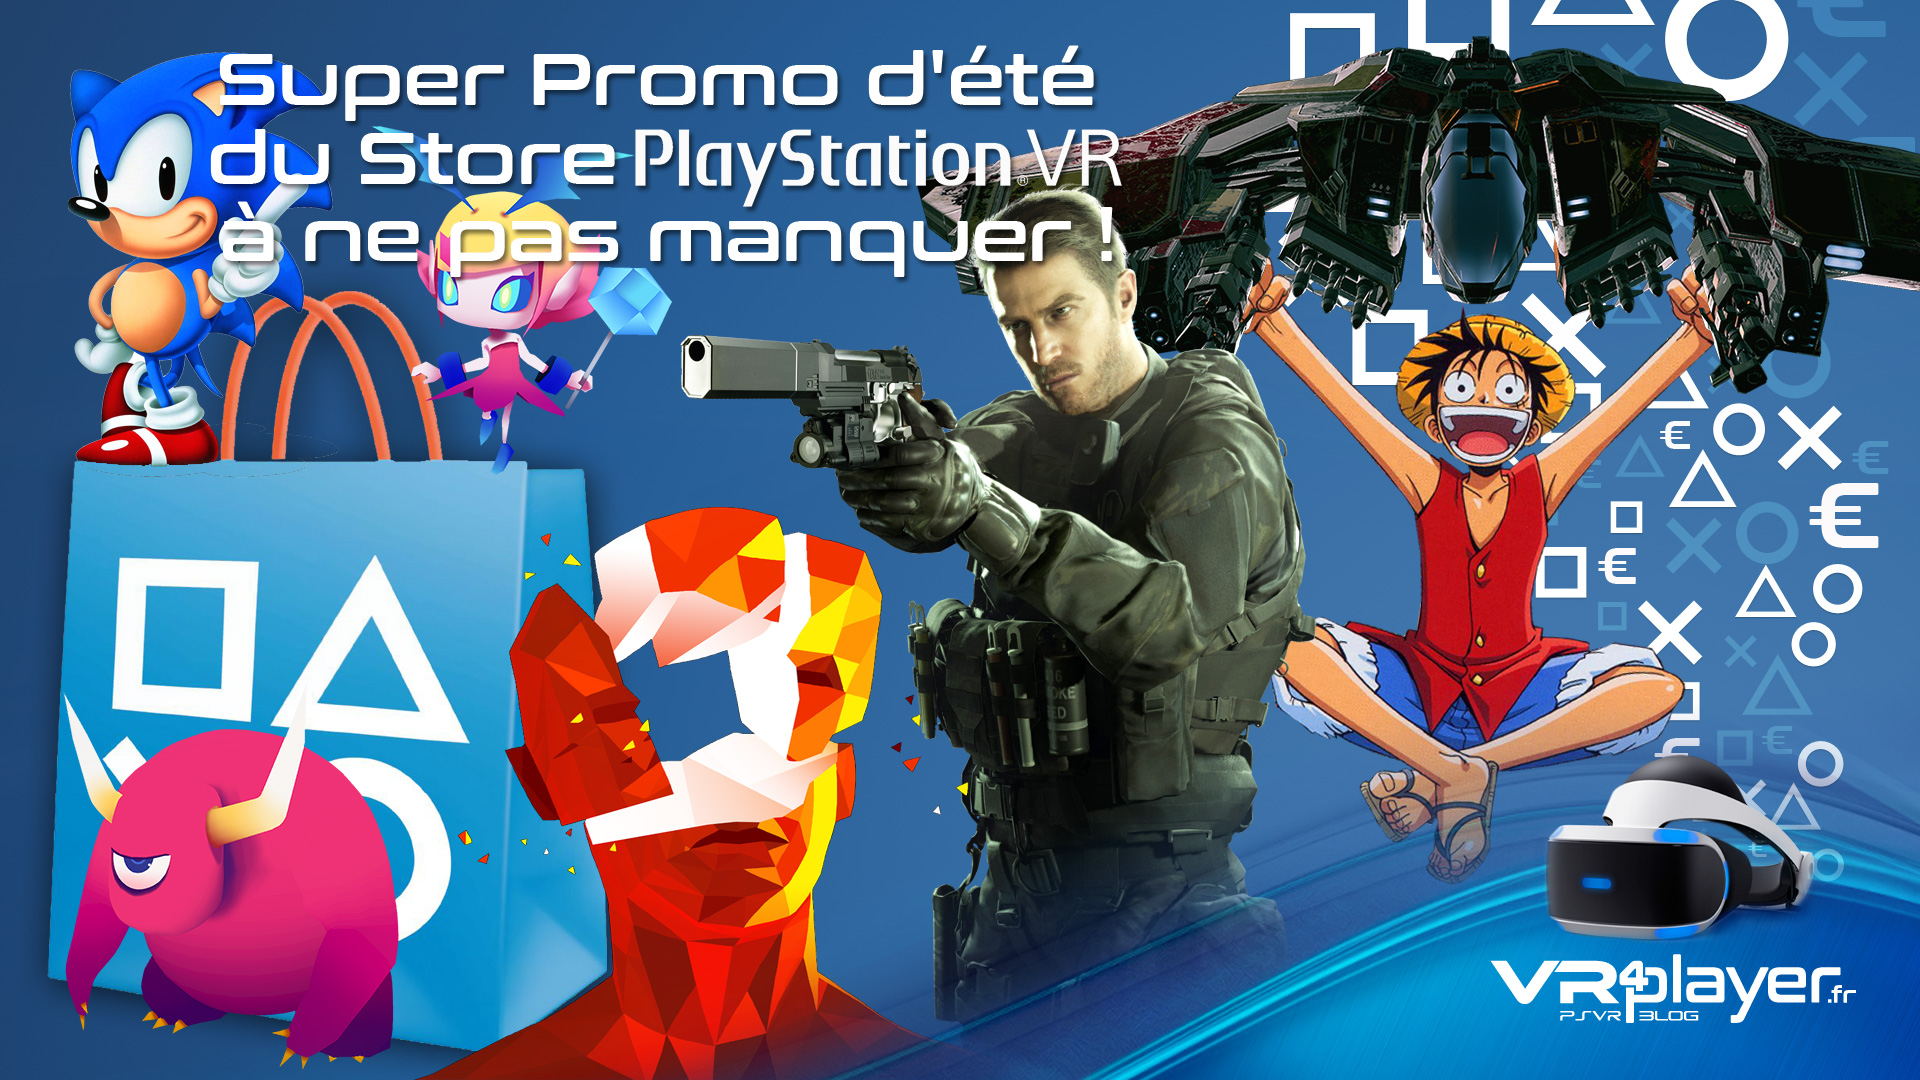 Super Promo d'été PSVR vr4player.fr